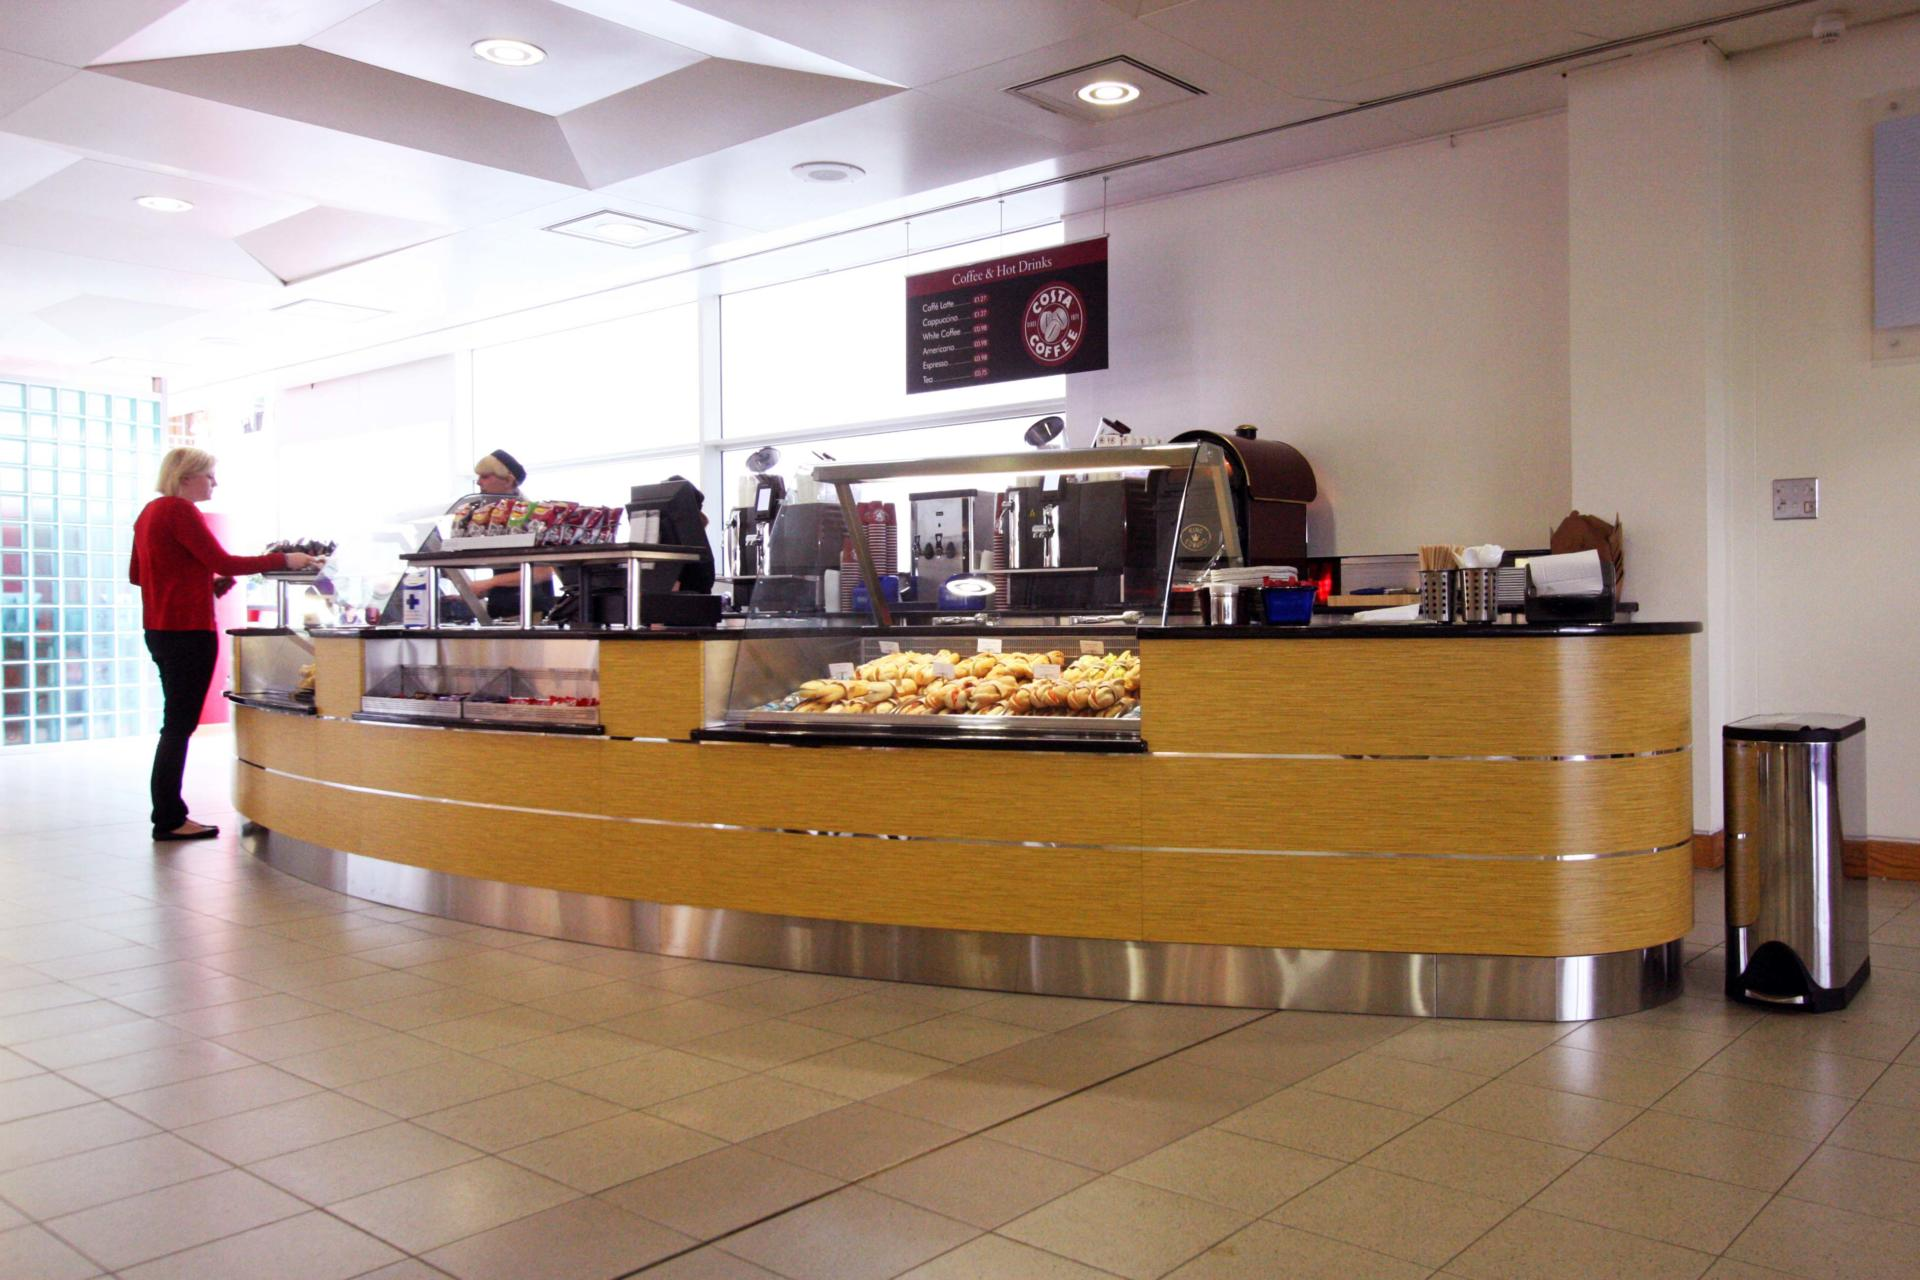 nationwide_swindon_staff restaurant_servery (20)